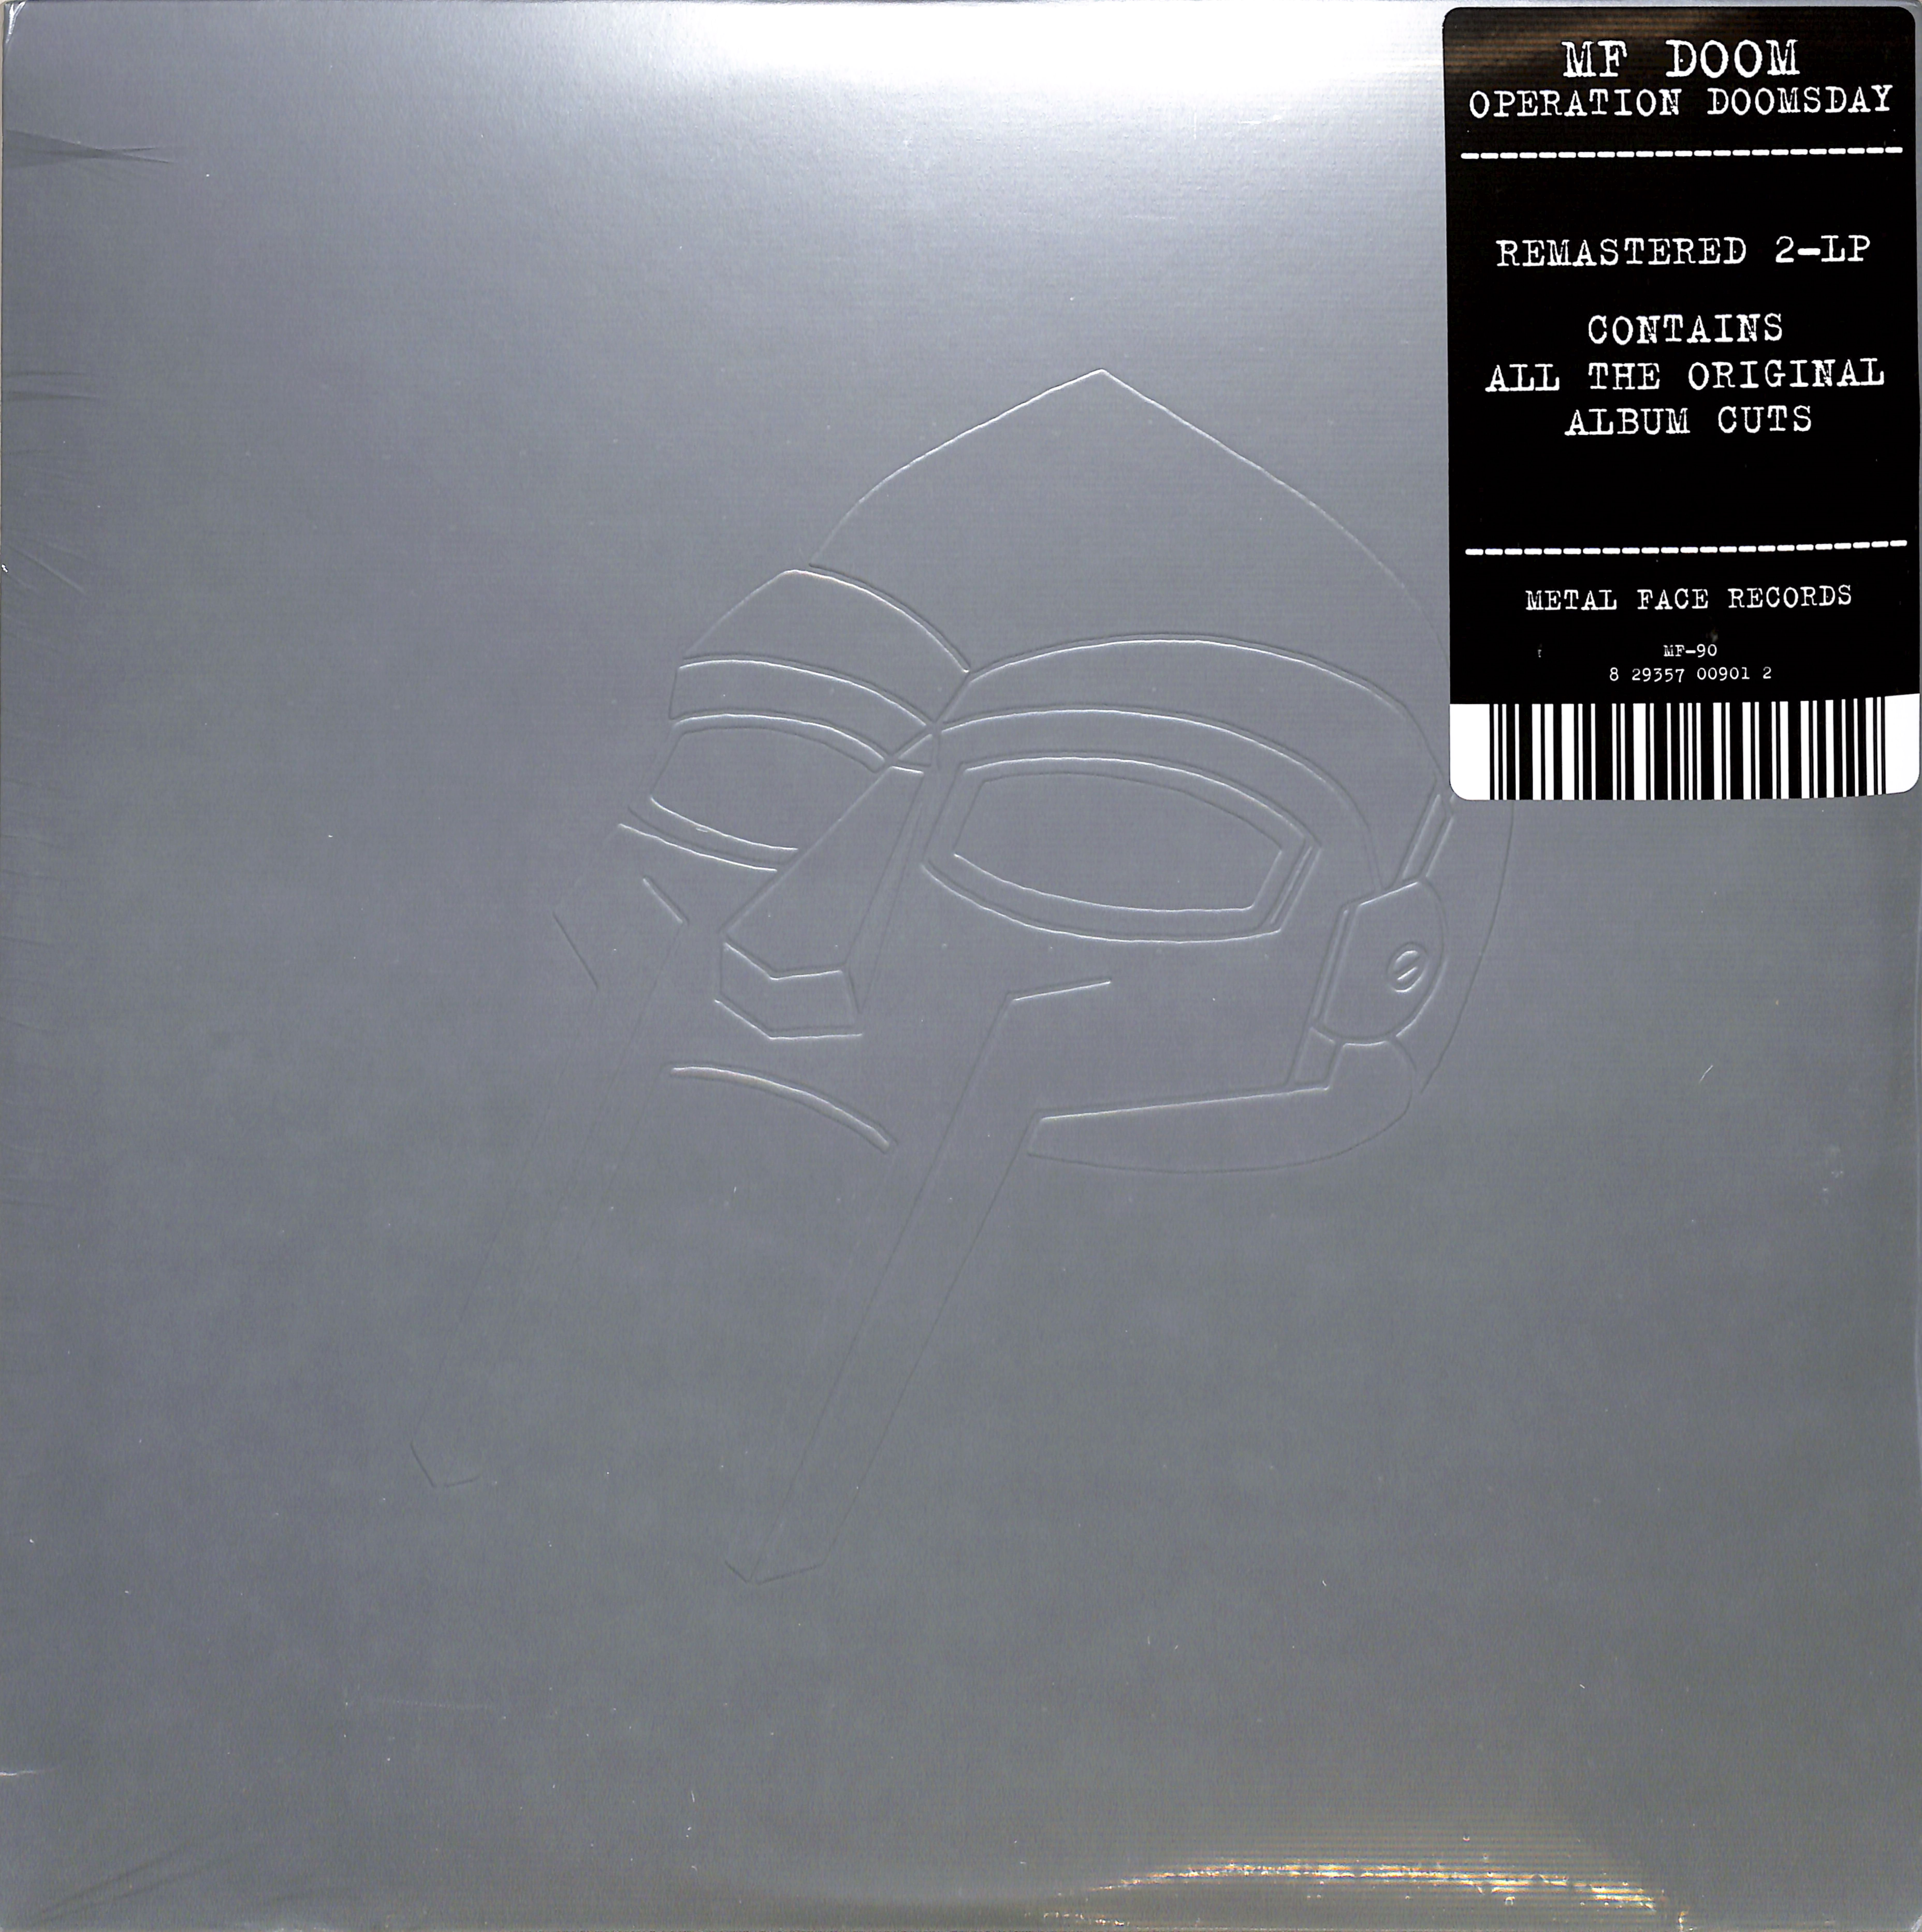 Mf Doom - OPERATION DOOMSDAY